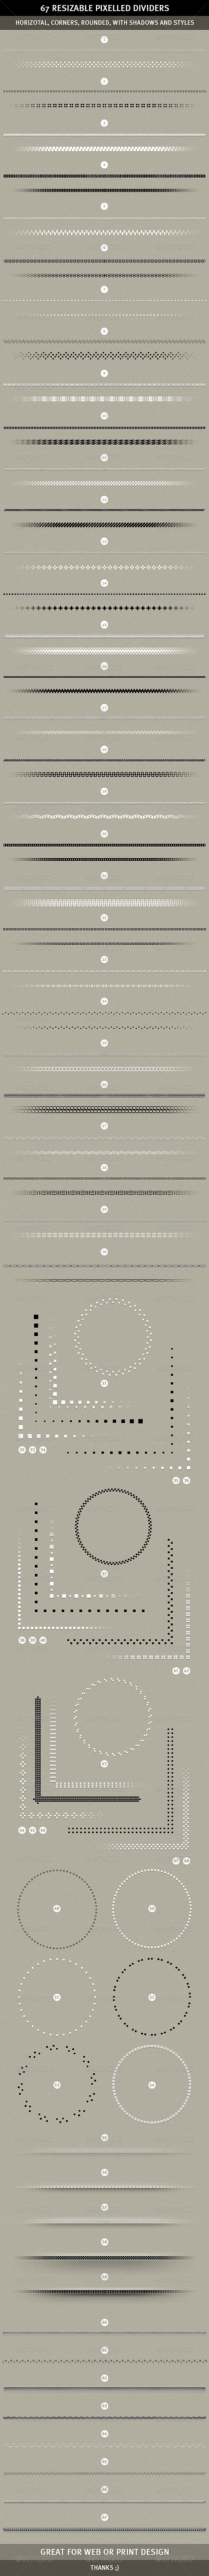 GraphicRiver 67 Pixelled Resizable Dividers 1553475